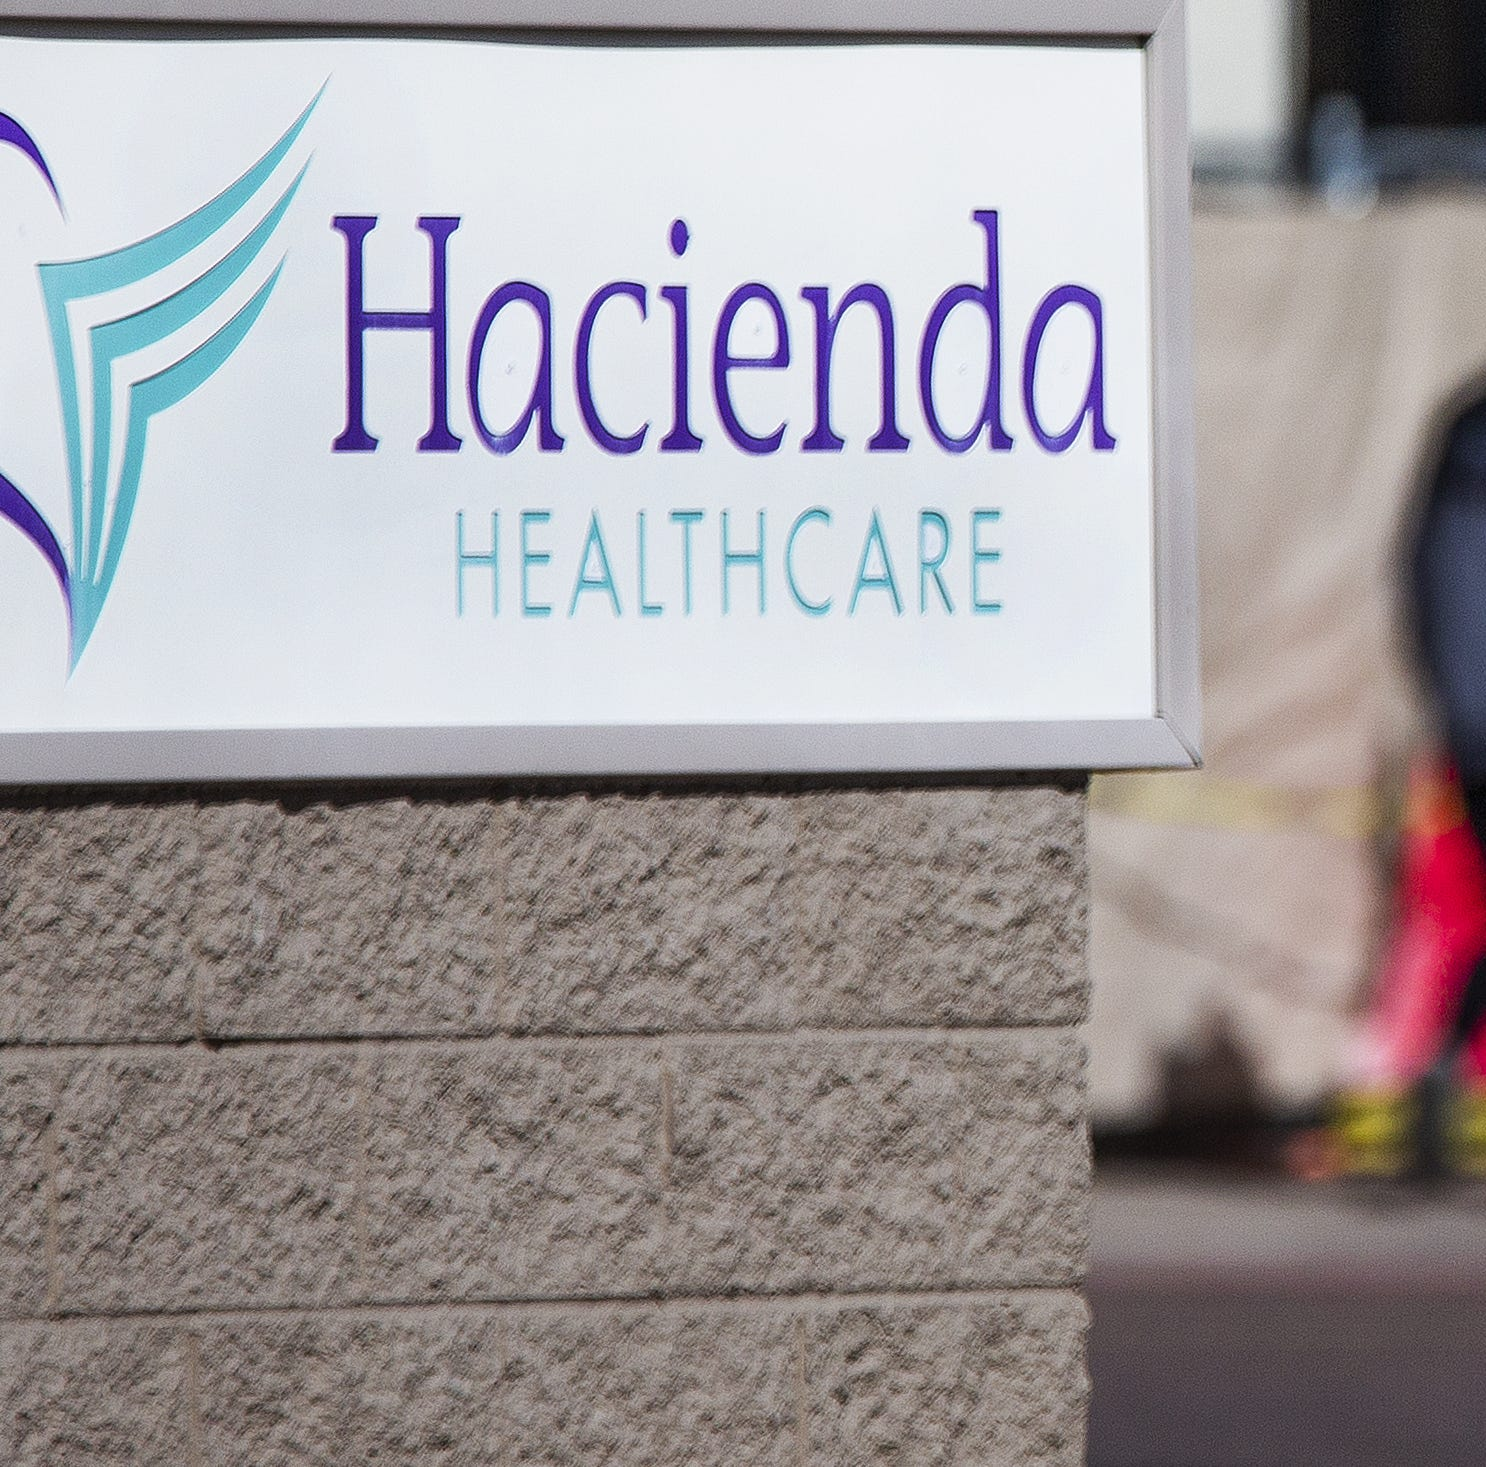 Doctor who cared for Hacienda HealthCare rape victim has been suspended, another resigns